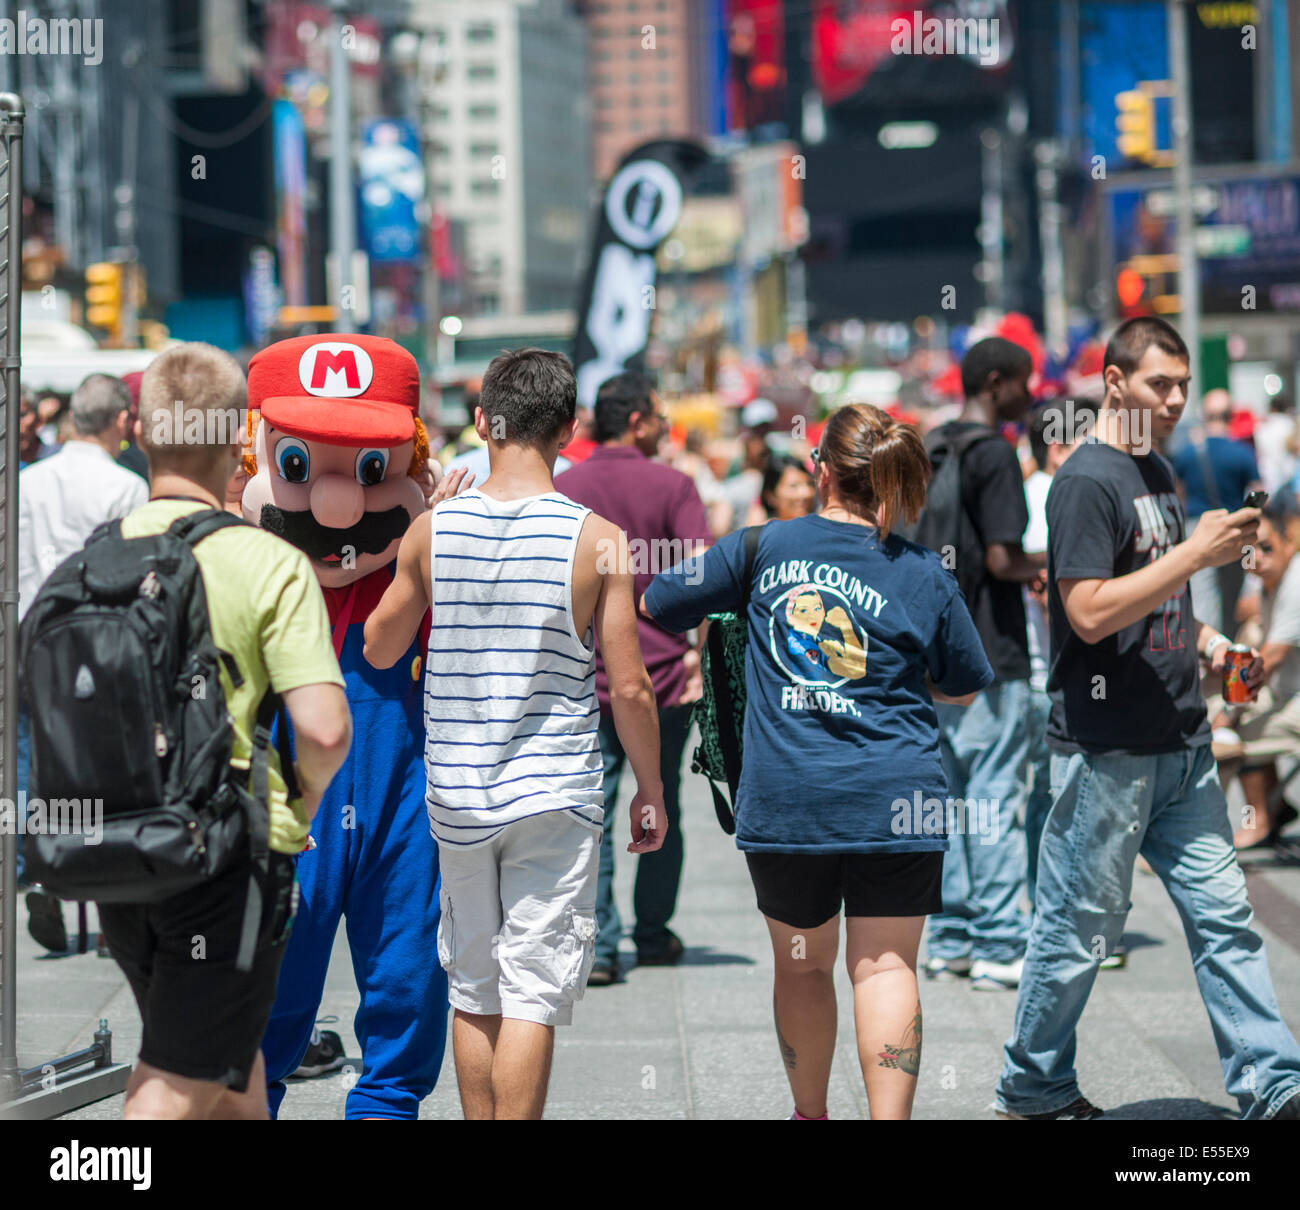 Super Mario solicits tourists in Times Square in New York on Friday, July 18, 2014. - Stock Image